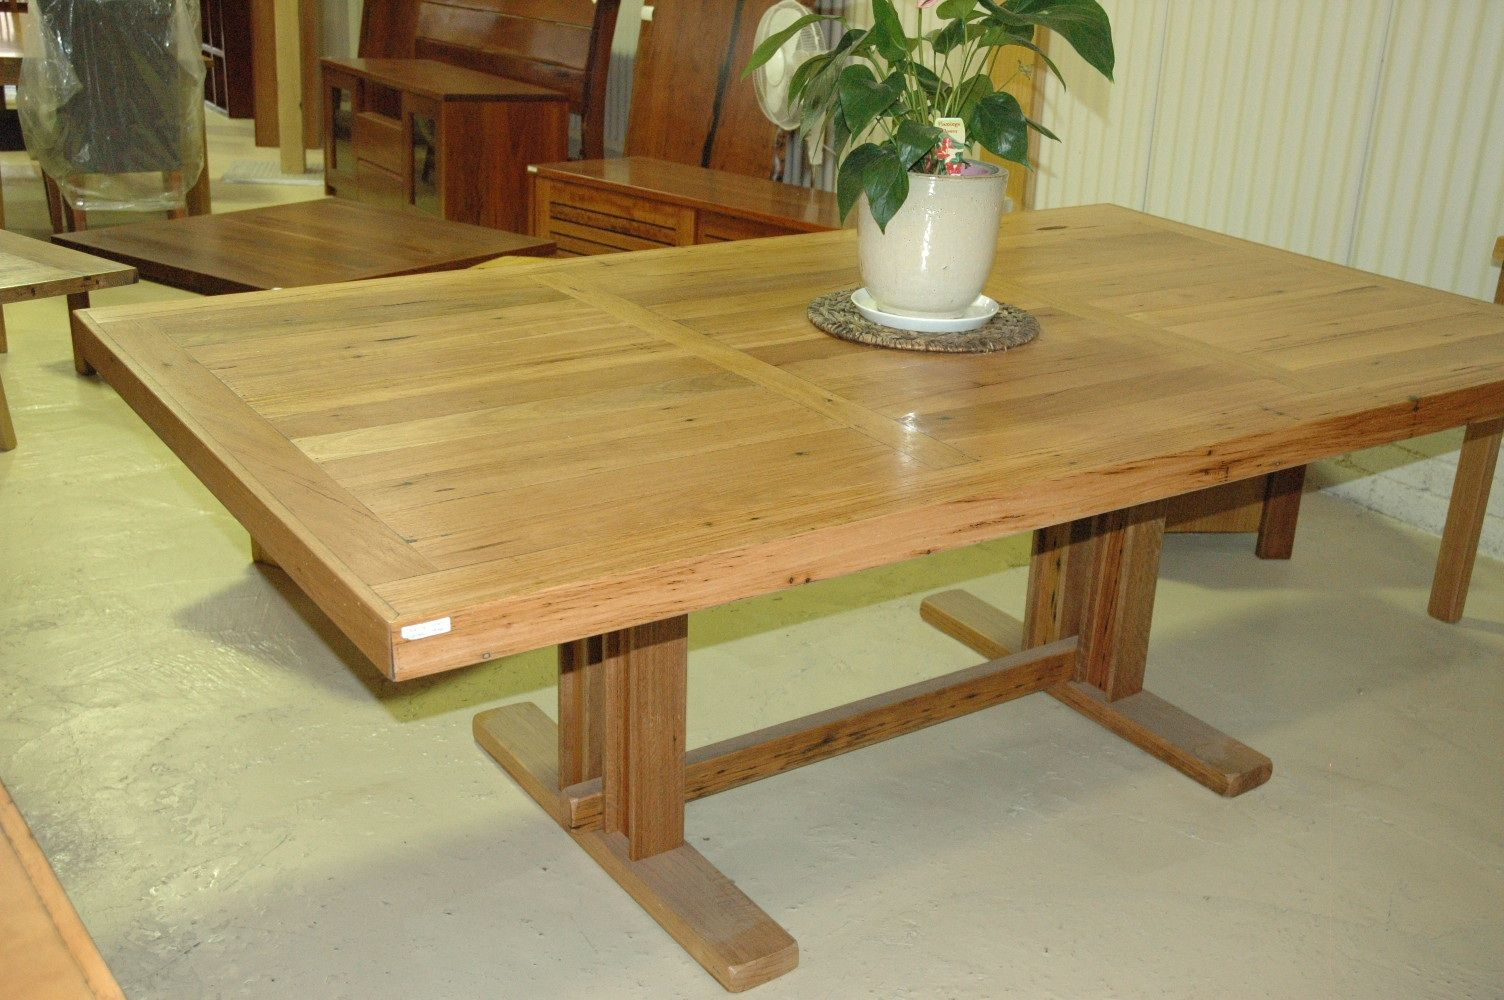 Hamptons Style Recycled Timber Dining Table Quality Furniture Unique Design